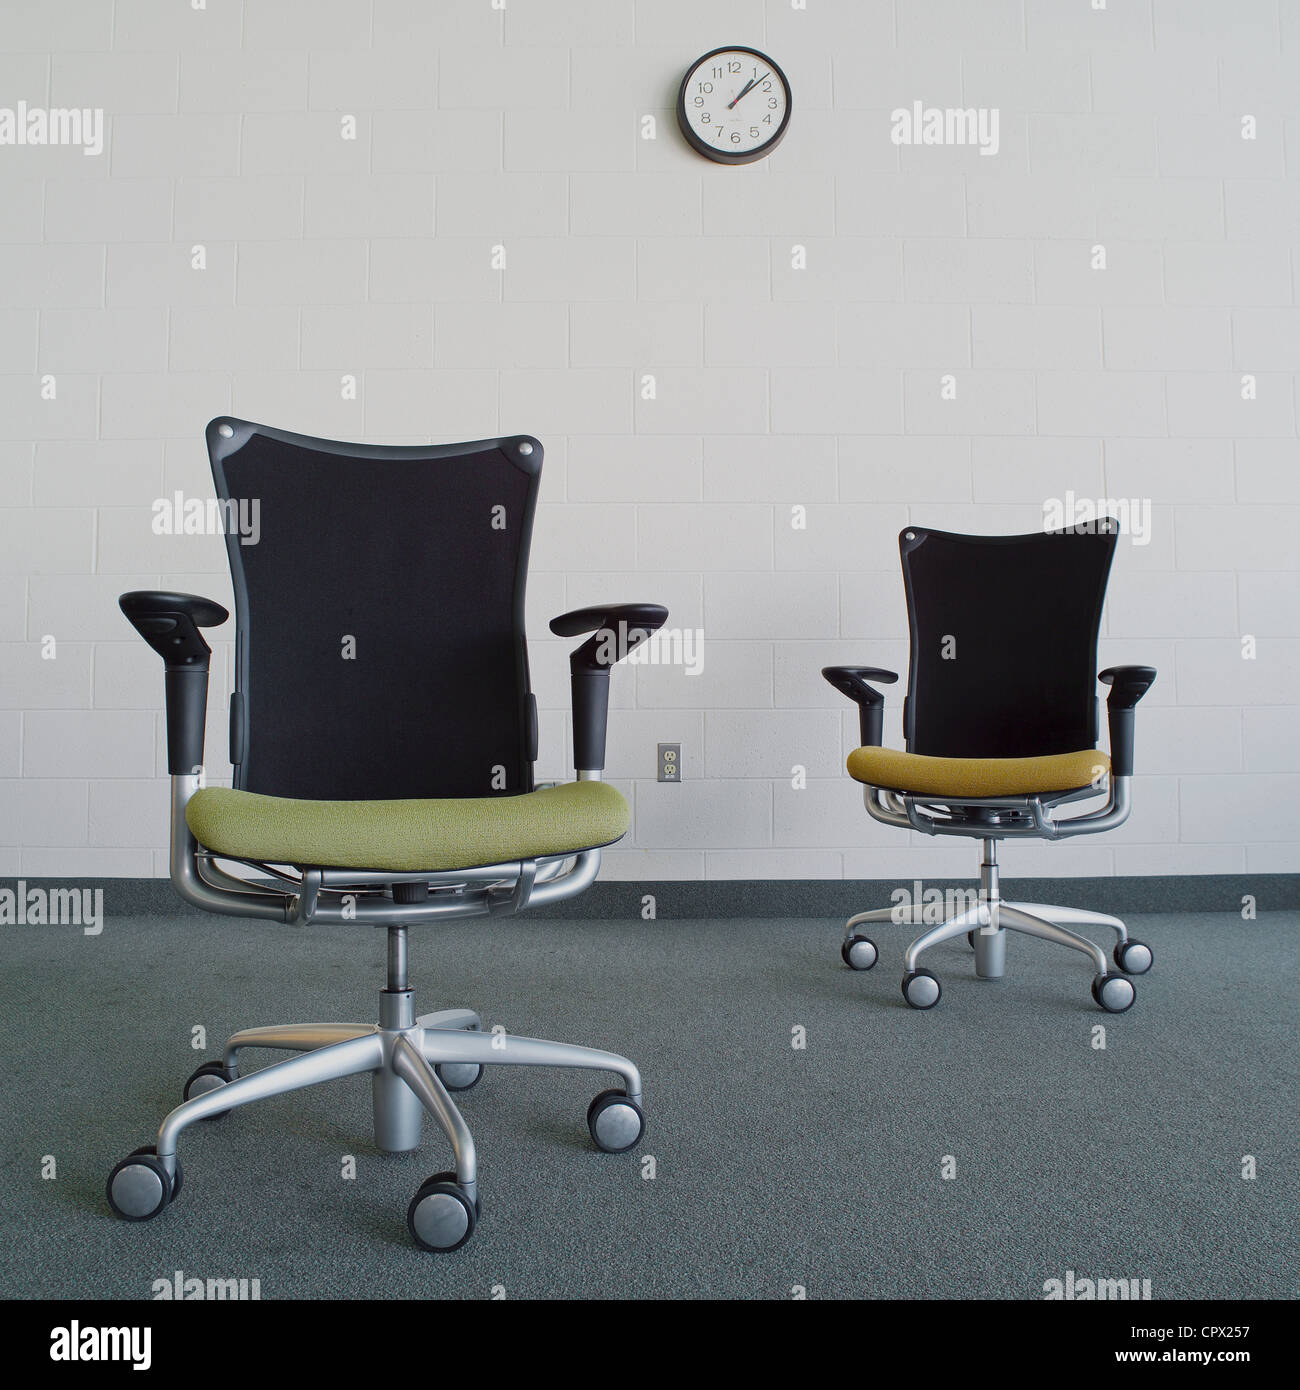 Empty office chairs in office - Stock Image